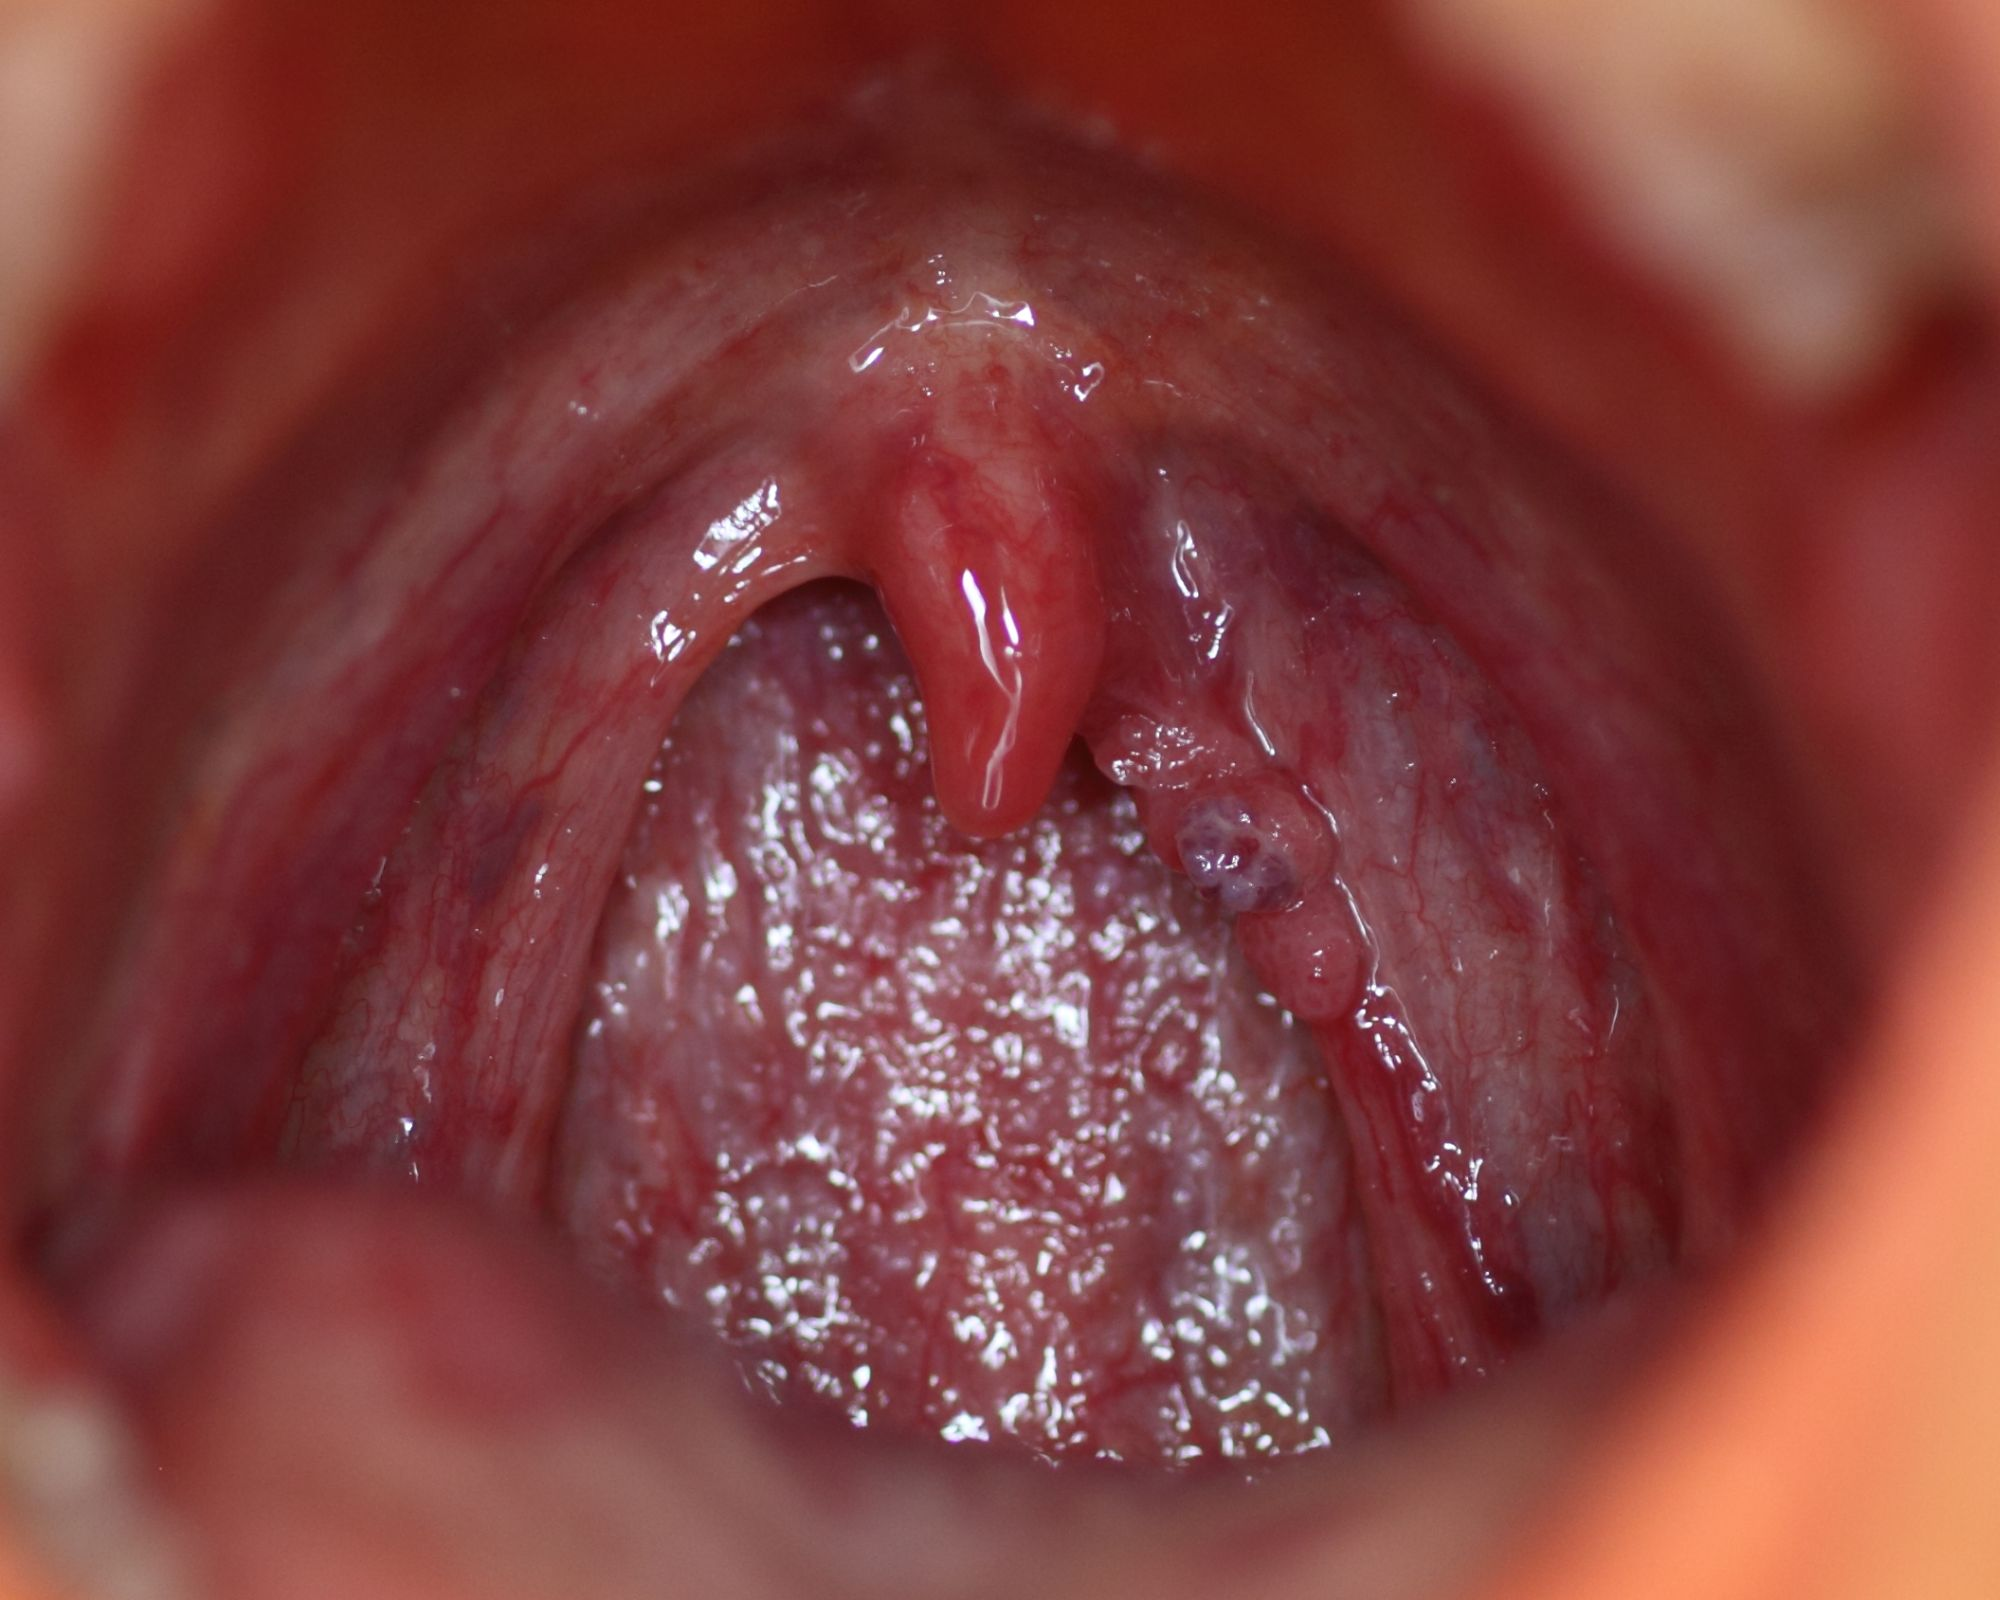 papilloma wart on my uvula)